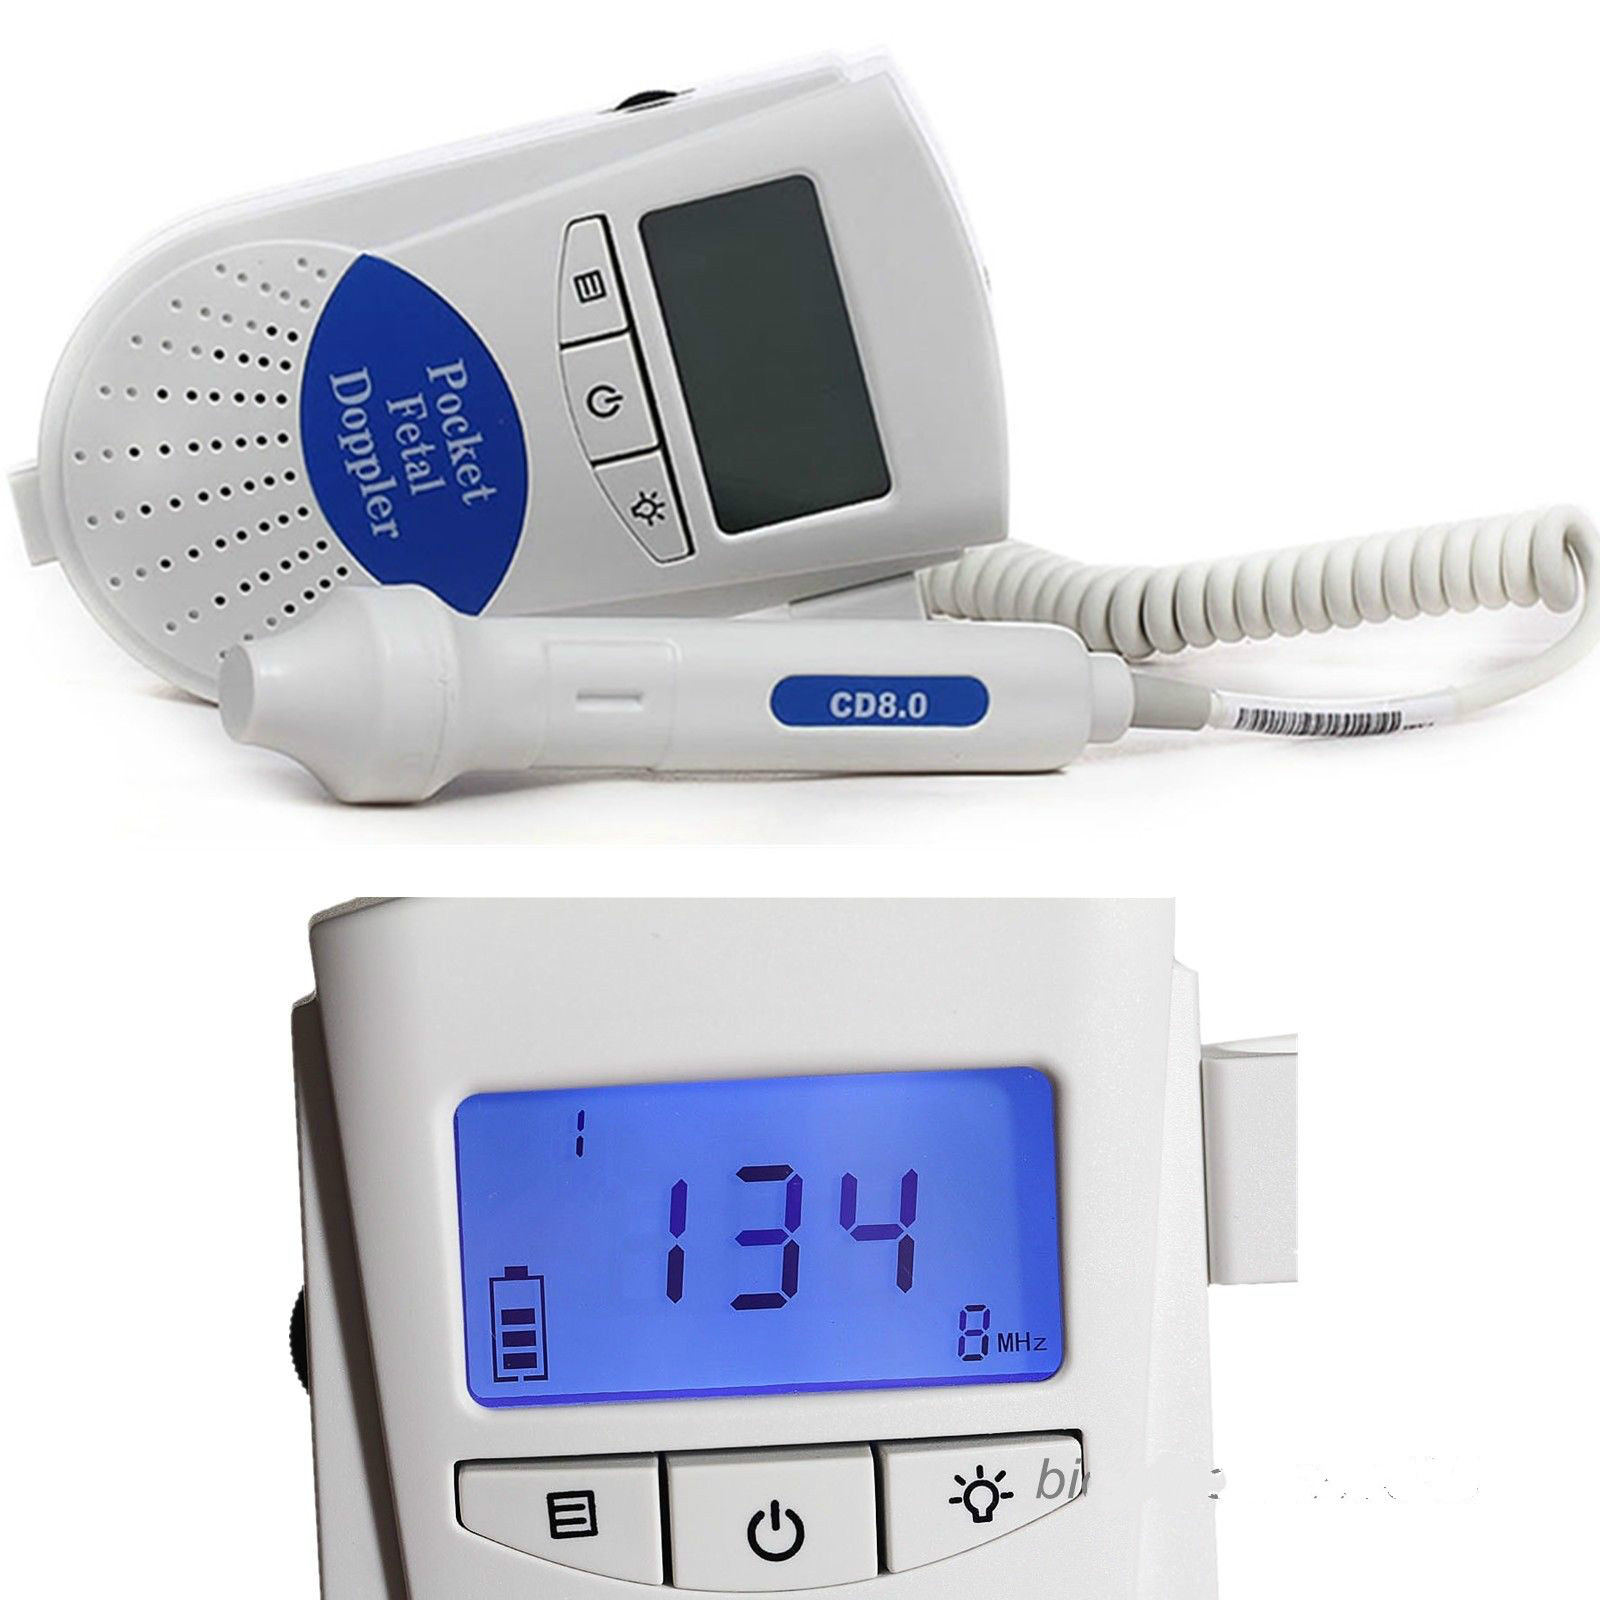 CE/FDA 8MHz Fetal Doppler with LCD Display Home Care Monitor 100% High Quality